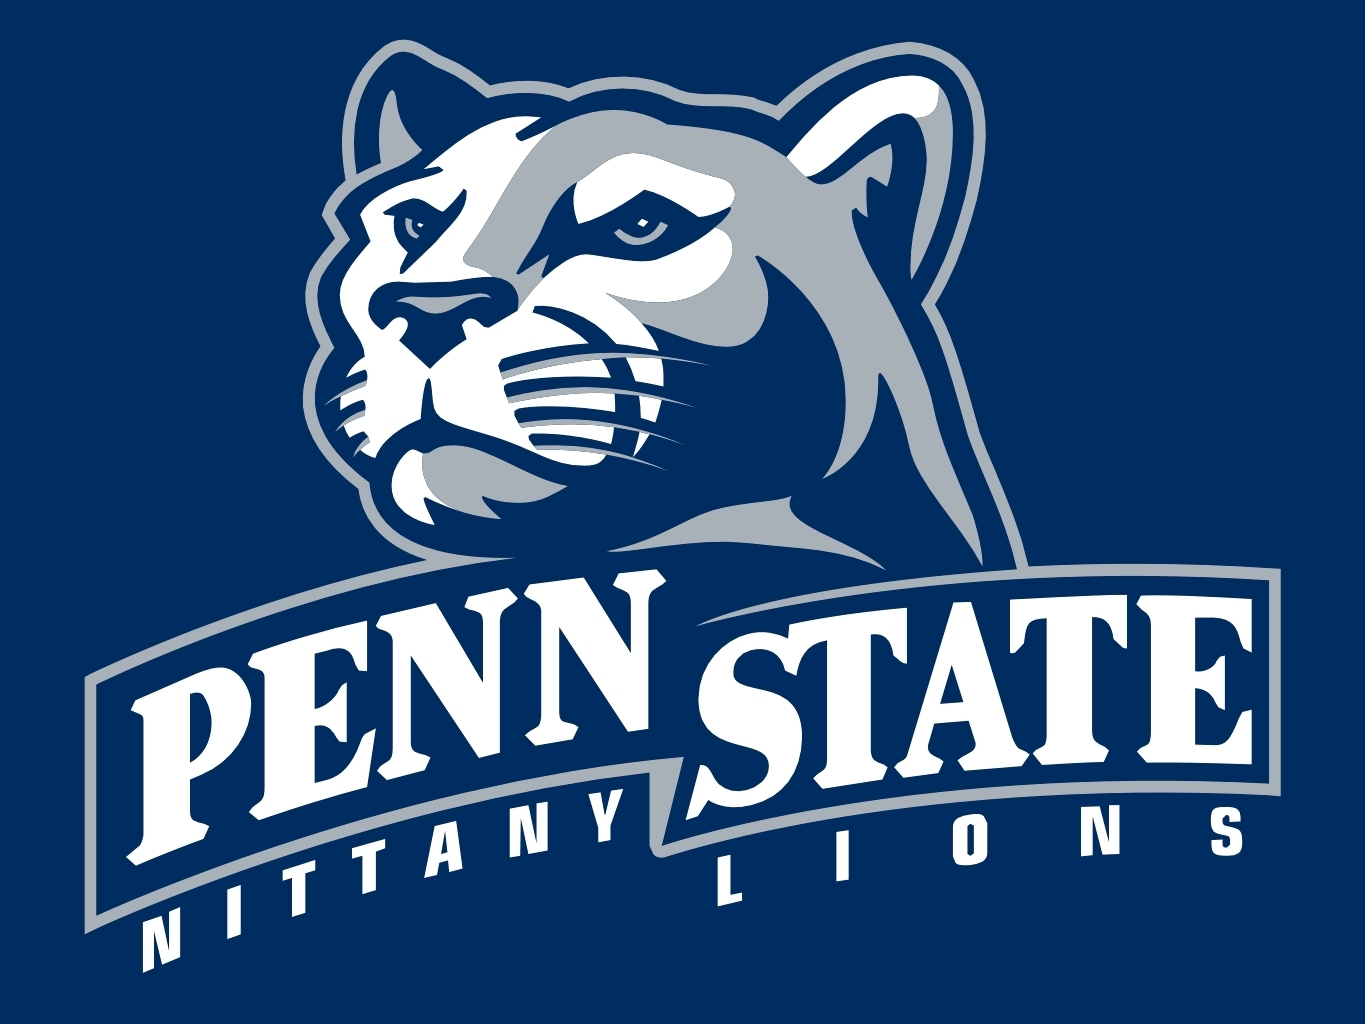 penn state college essay power ranking the five penn state logos  power ranking the five penn state logos onward state 3 the ferocious lion logo application